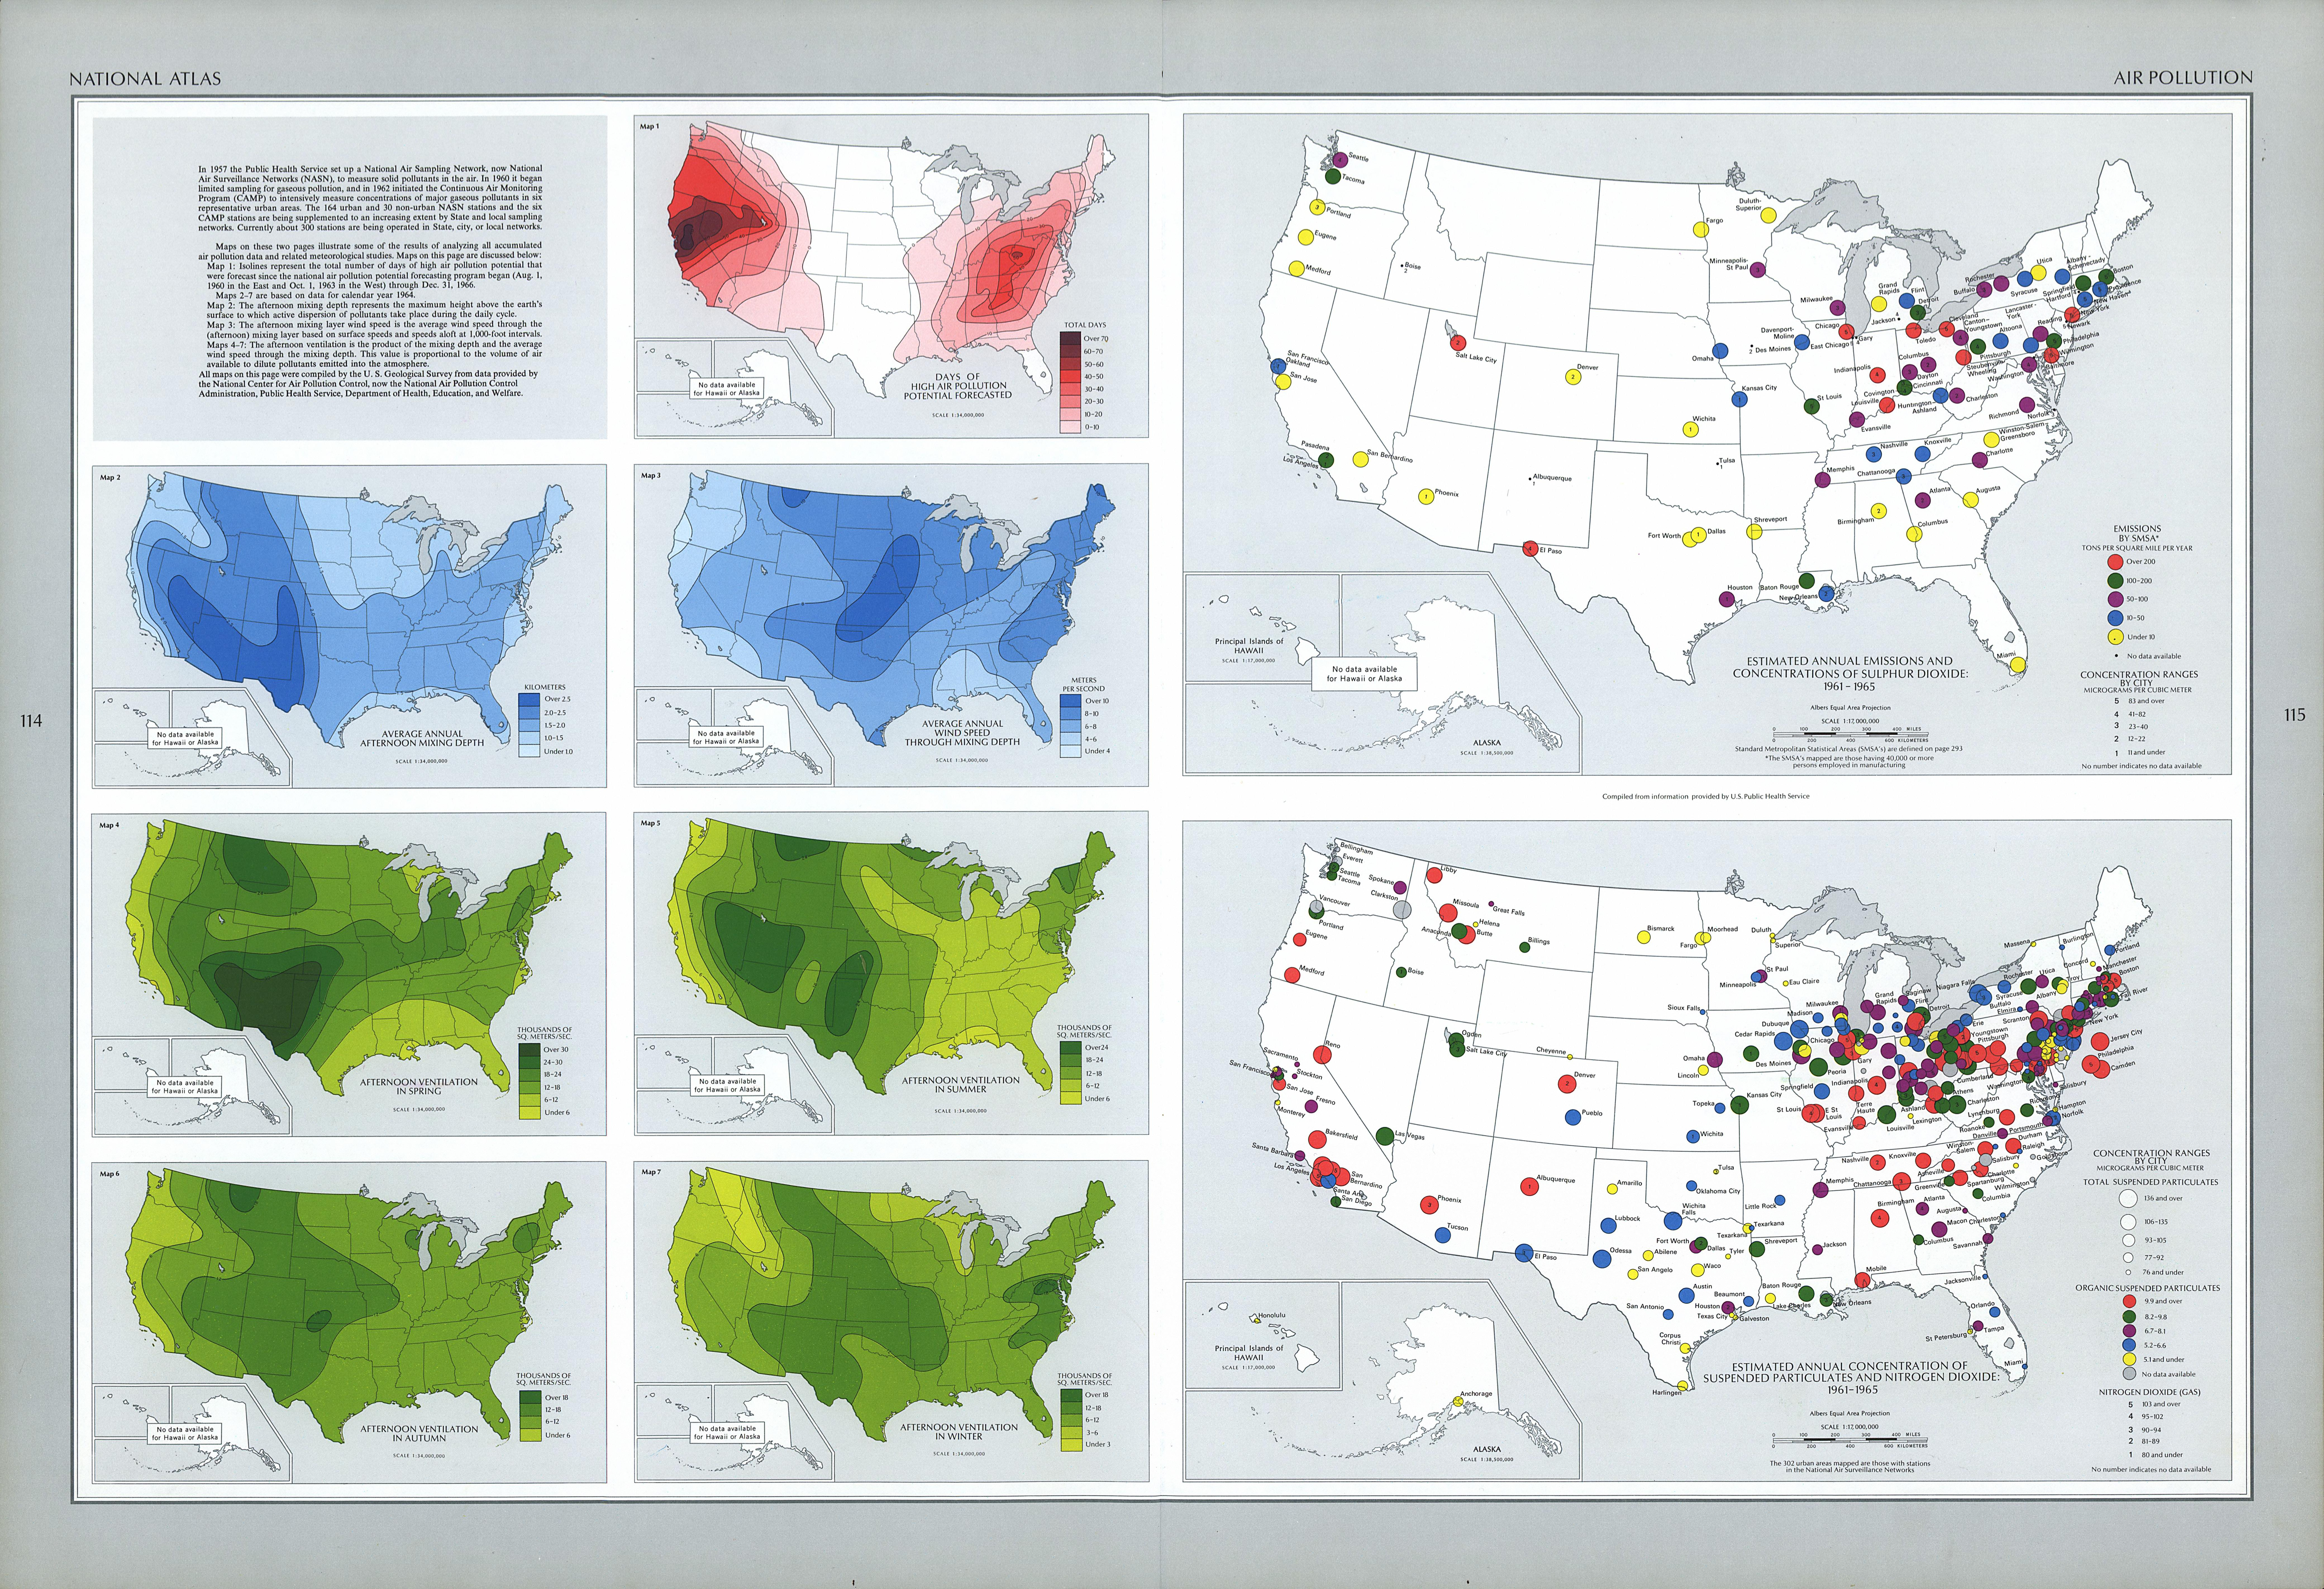 United States Air Pollution Map